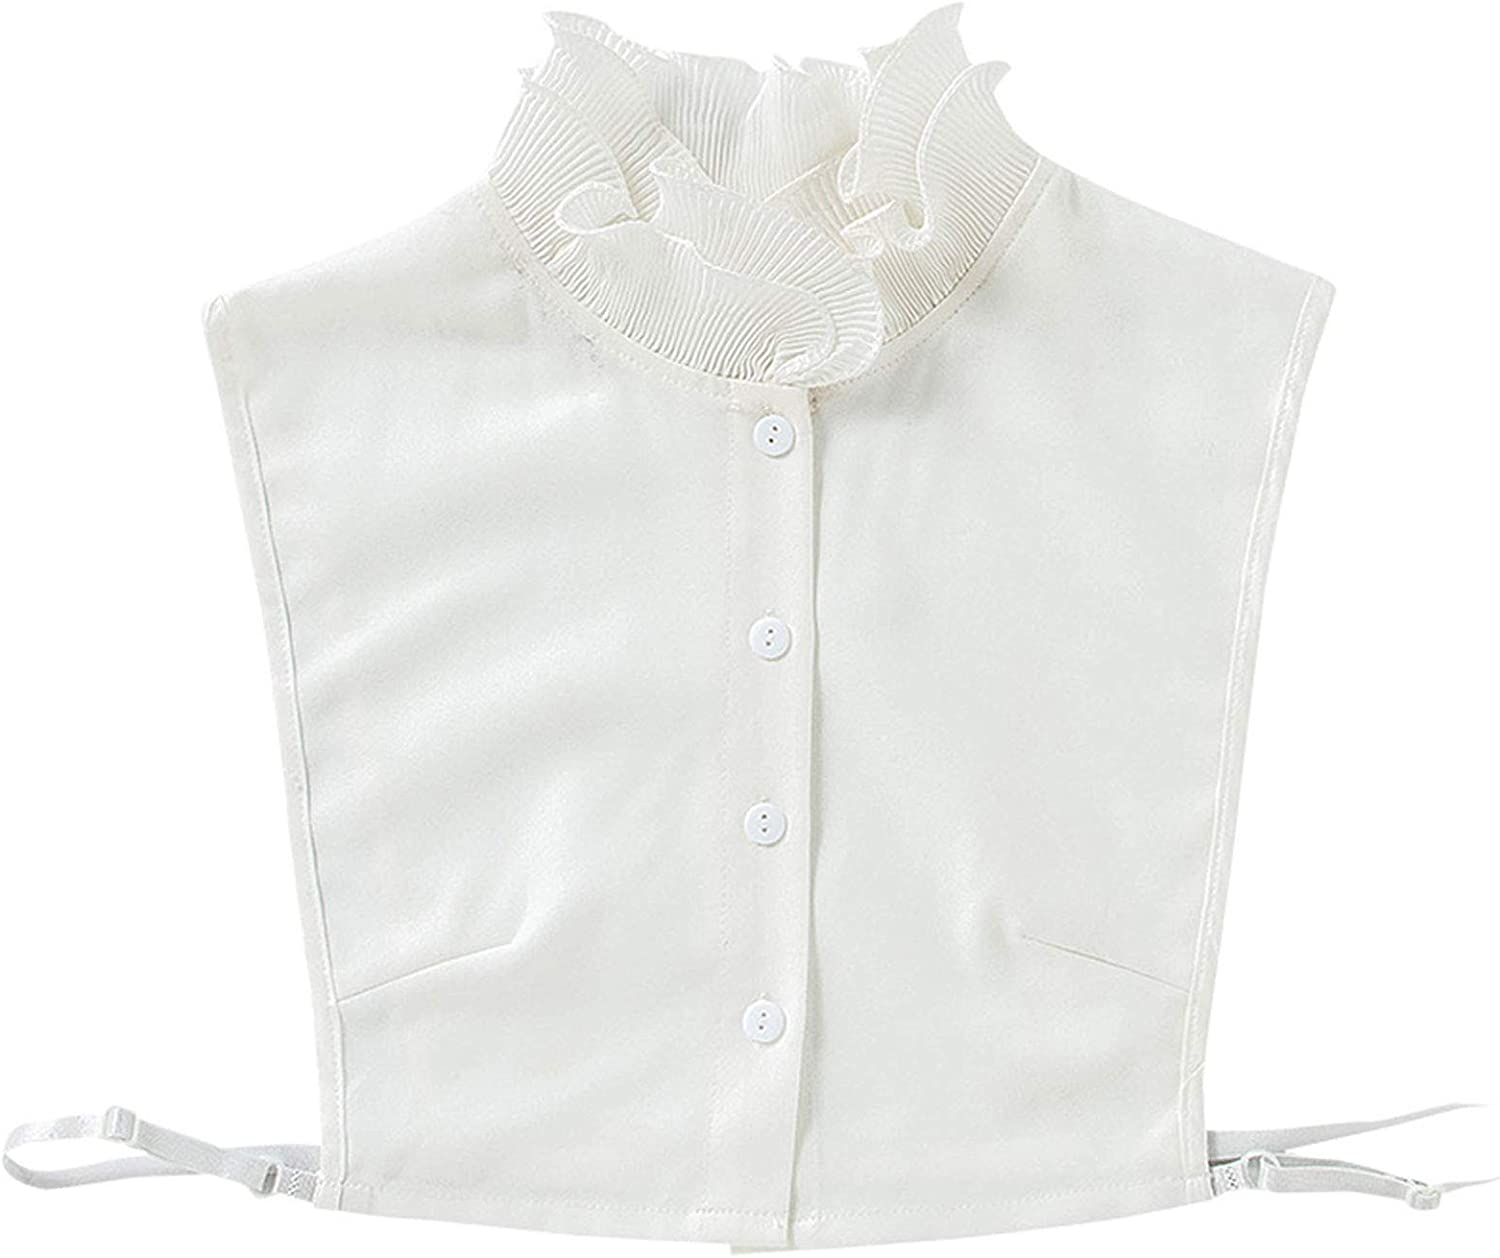 YOUSIKE Detachable Blouse, Women Double Layer Ruffled Stand False Fake Collar Button Down Chiffon Solid Color Elegant Detachable Half Shirt Blouse Dickey Sweater Decorative Vest